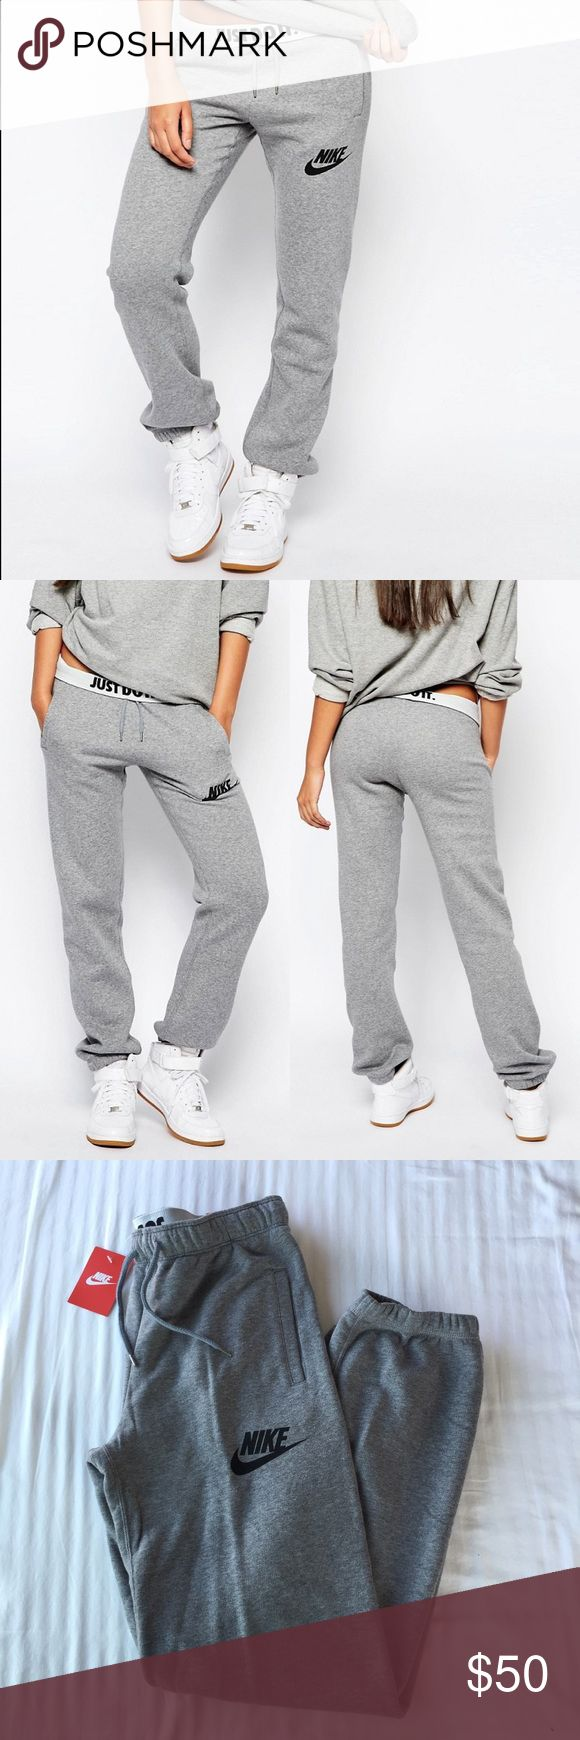 Nike Grey Loose Sweatpants •The comfortable Nike Rally Loose Women's Pants have a plush interior and a comfortable, loose fit that gives you plenty of room to move.   •Size S and M available. Baggy/relaxed fit.  •New with tag.   •NO TRADES/PAYPAL/MERC/HOLDS/NONSENSE. Nike Pants Track Pants & Joggers